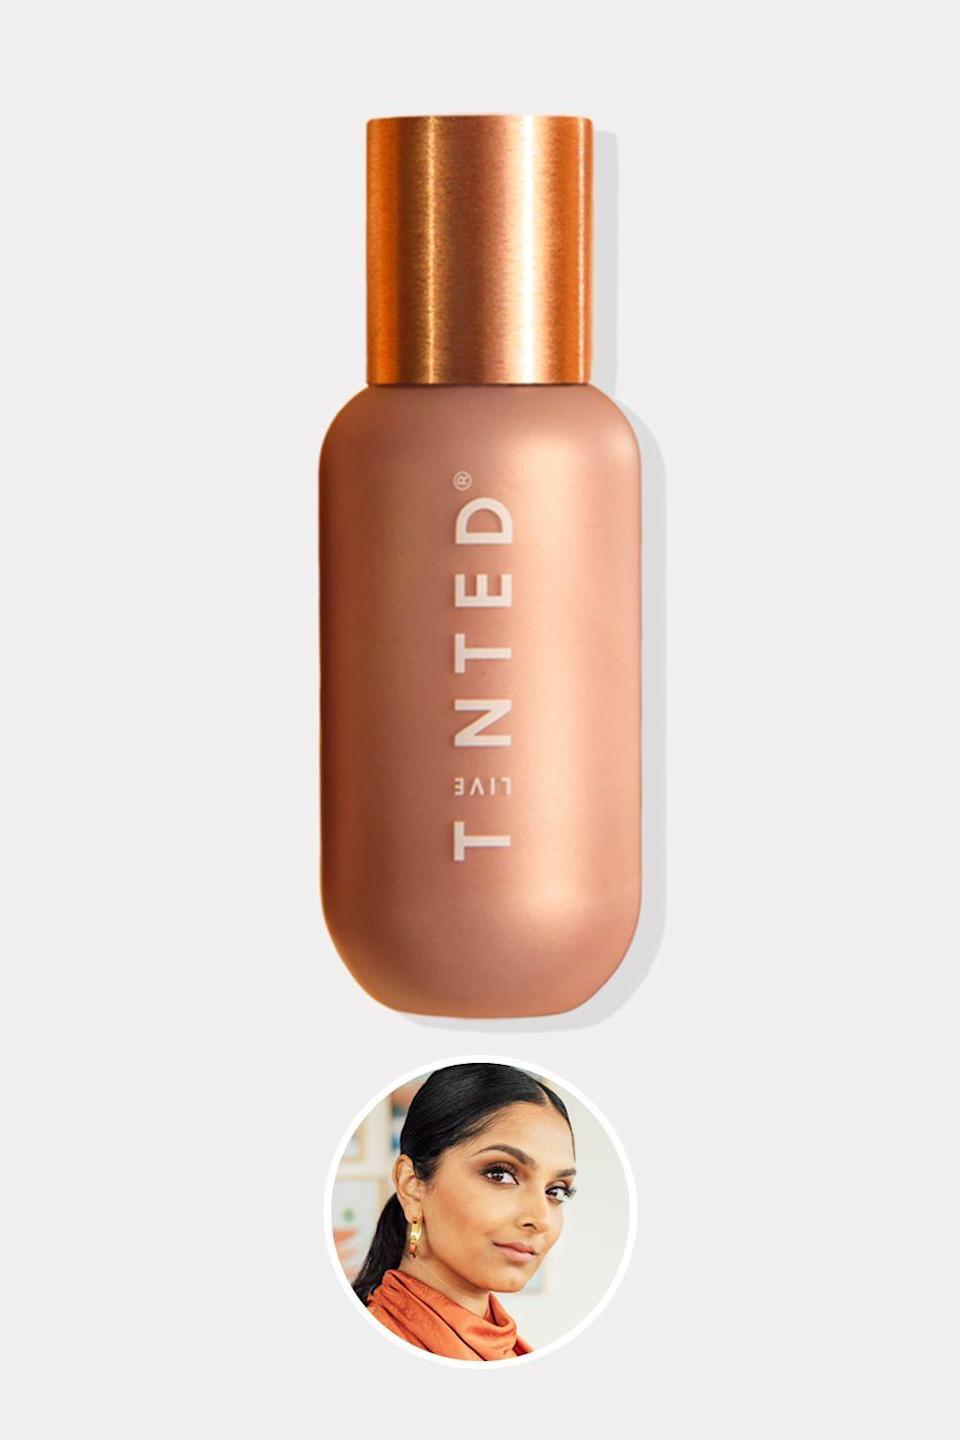 """<p><strong>Live Tinted</strong></p><p>livetinted.com</p><p><strong>$34.00</strong></p><p><a href=""""https://www.livetinted.com/collections/gallery/products/hueglow-dawn"""" rel=""""nofollow noopener"""" target=""""_blank"""" data-ylk=""""slk:Shop Now"""" class=""""link rapid-noclick-resp"""">Shop Now</a></p><p>Remember that Youtube video of the woman applying red lipstick to conceal her undereye circles? That was Deepica Mutyala—and her viral moment was the catalyst for her inclusive brand, Live Tinted. That red lipstick inspired the brand's multi-use Huesticks, which can serve as a color corrector, eye shadow, or lipstick. They're great, but this functional highlighter should not be overlooked: It's serum-like ingredients (hyaluronic acid, squalane, and plant extracts) do very good things for your complexion. </p>"""